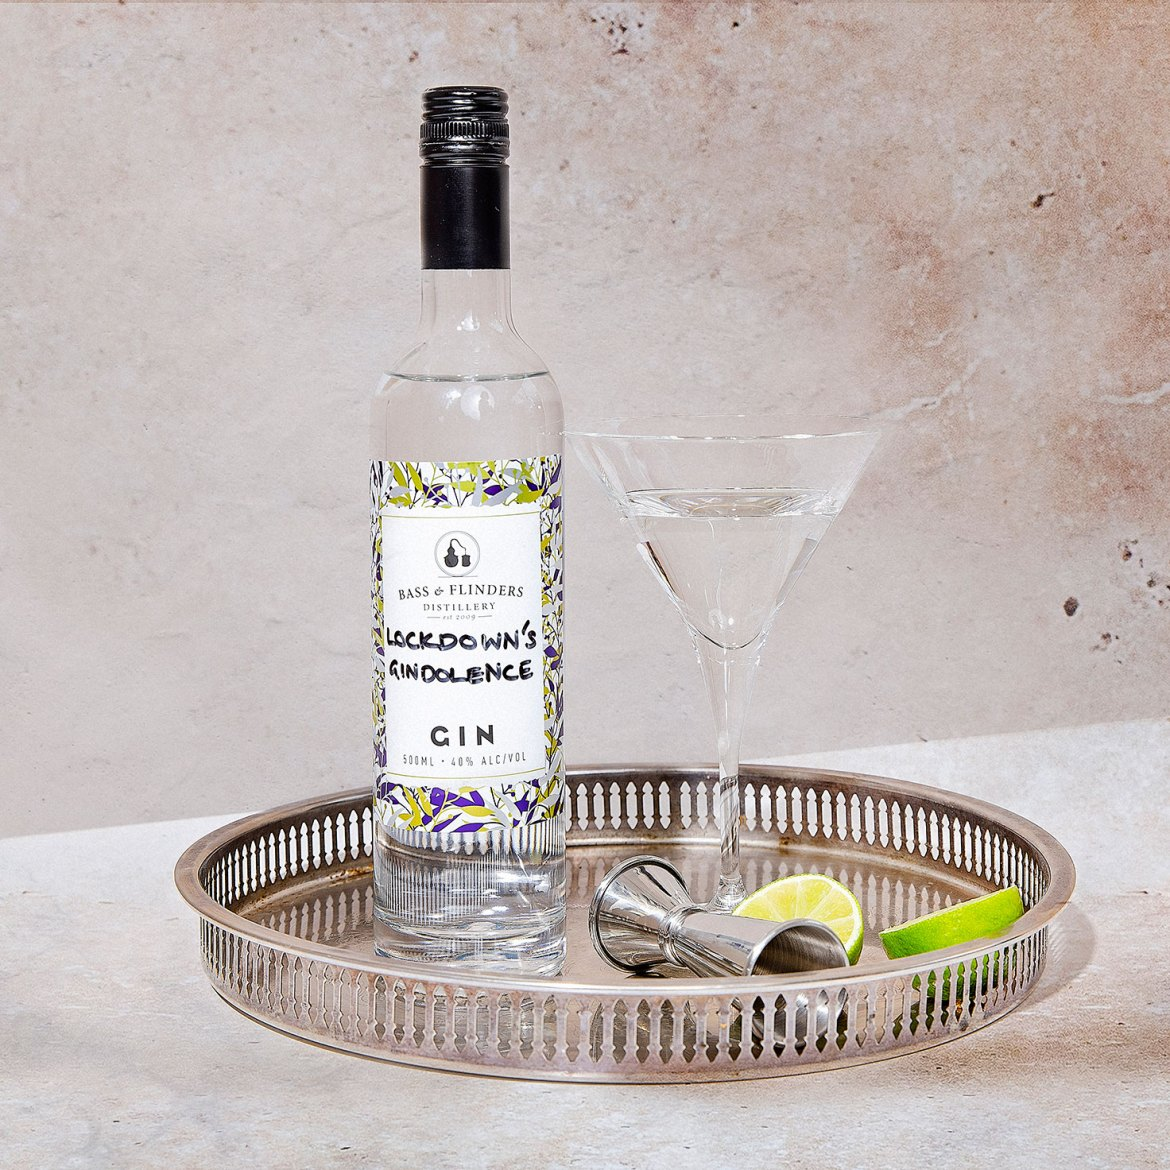 Bass & Flinders' at-home gin masterclass kit - image by Belinda Jackson.